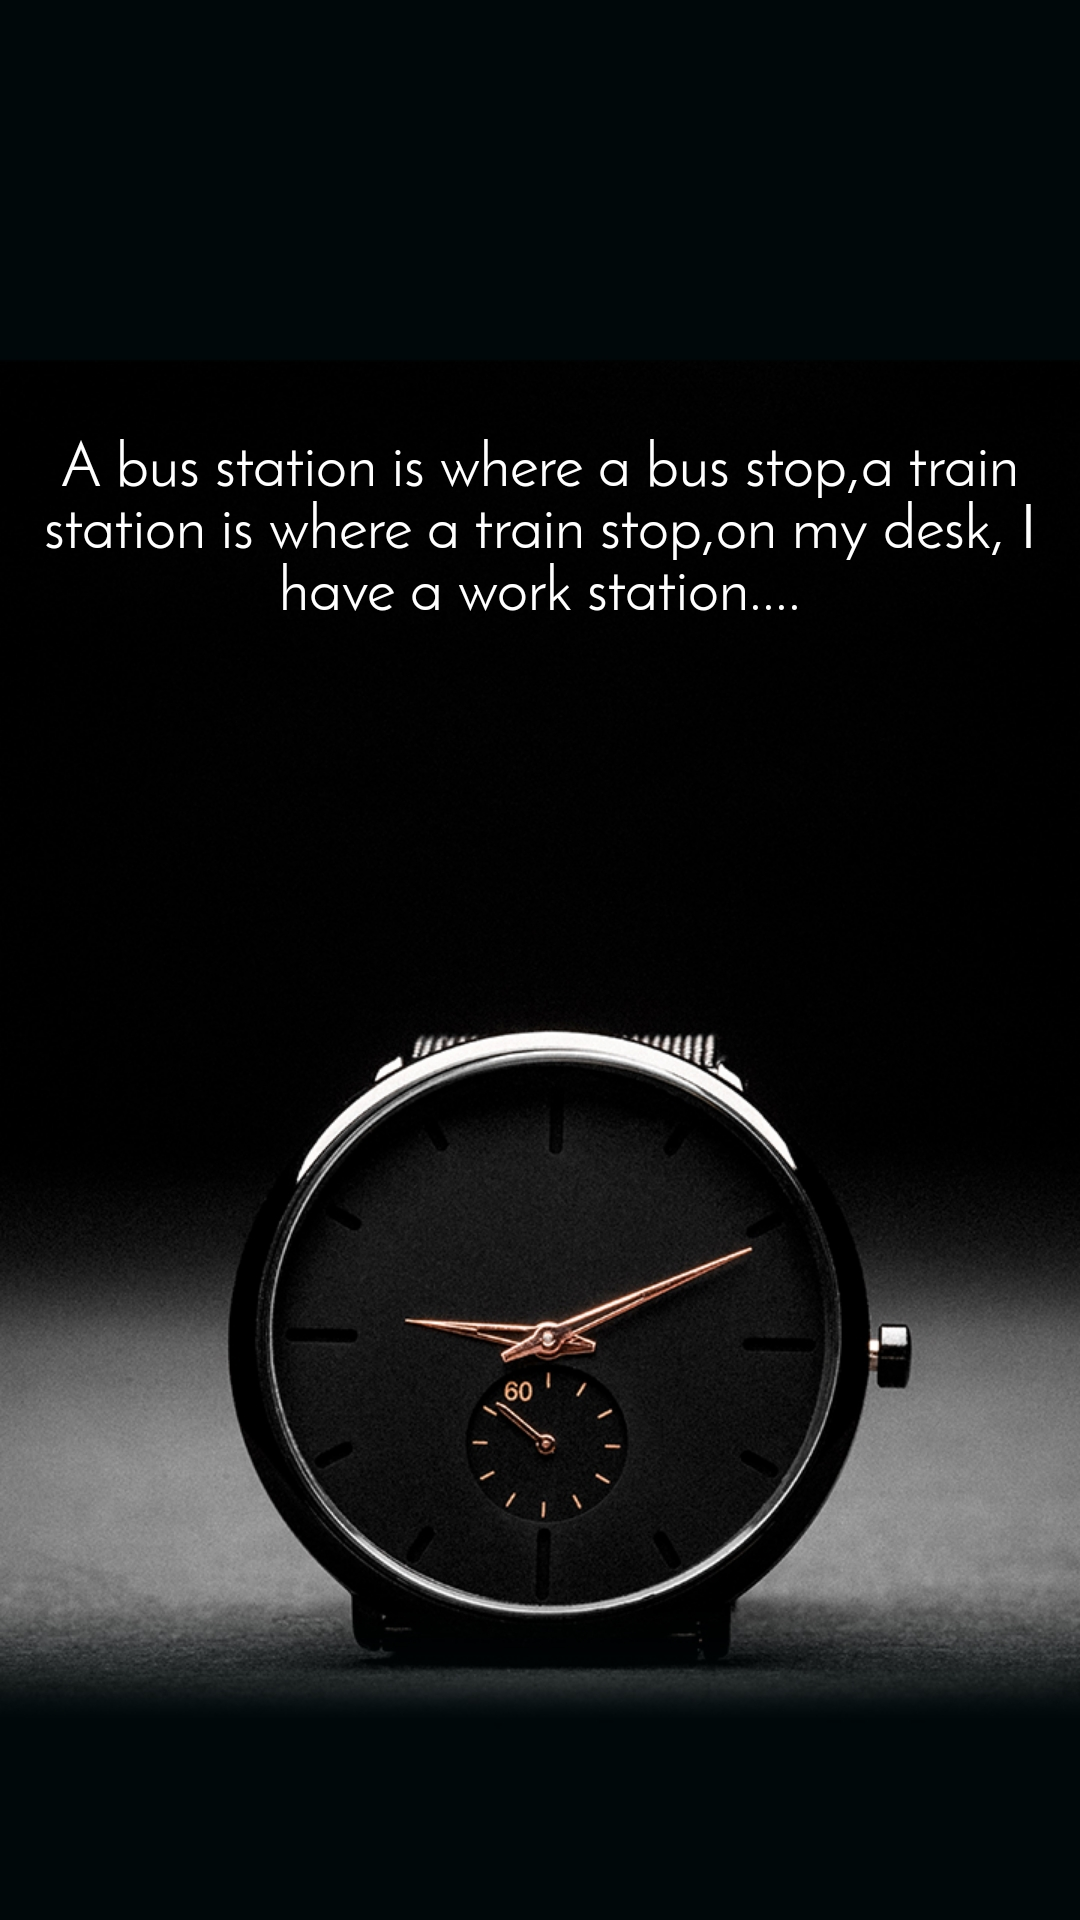 A bus station is where a bus stop,a train station is where a train stop,on my desk, I have a work station....